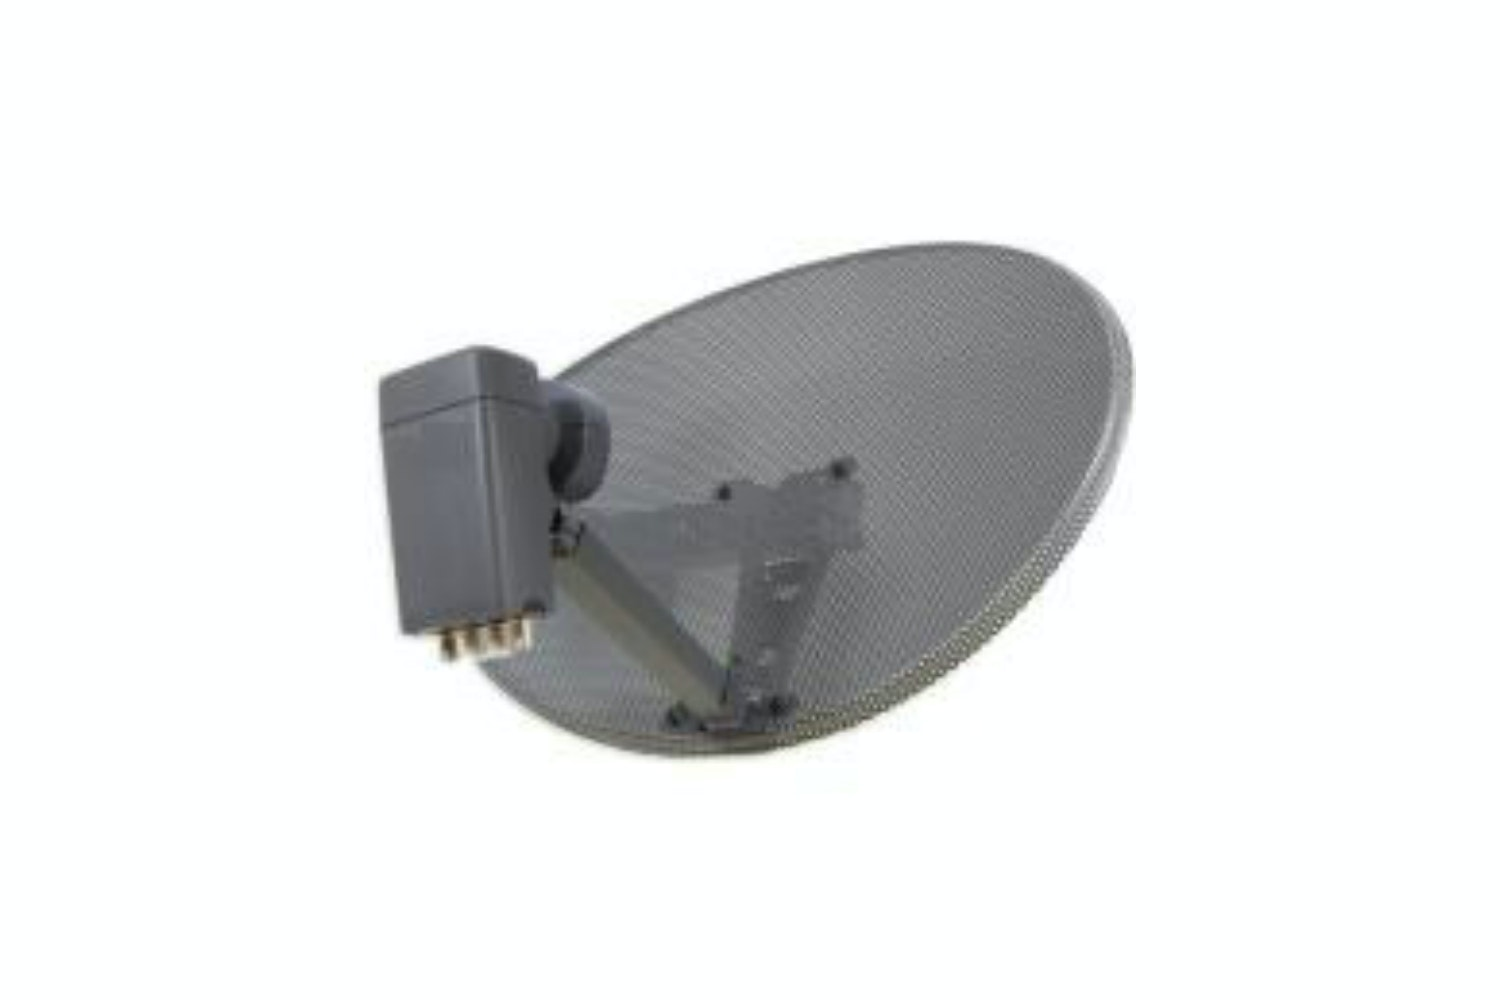 Universal Satellite Dish with Quad LNB | EL60DDPQ